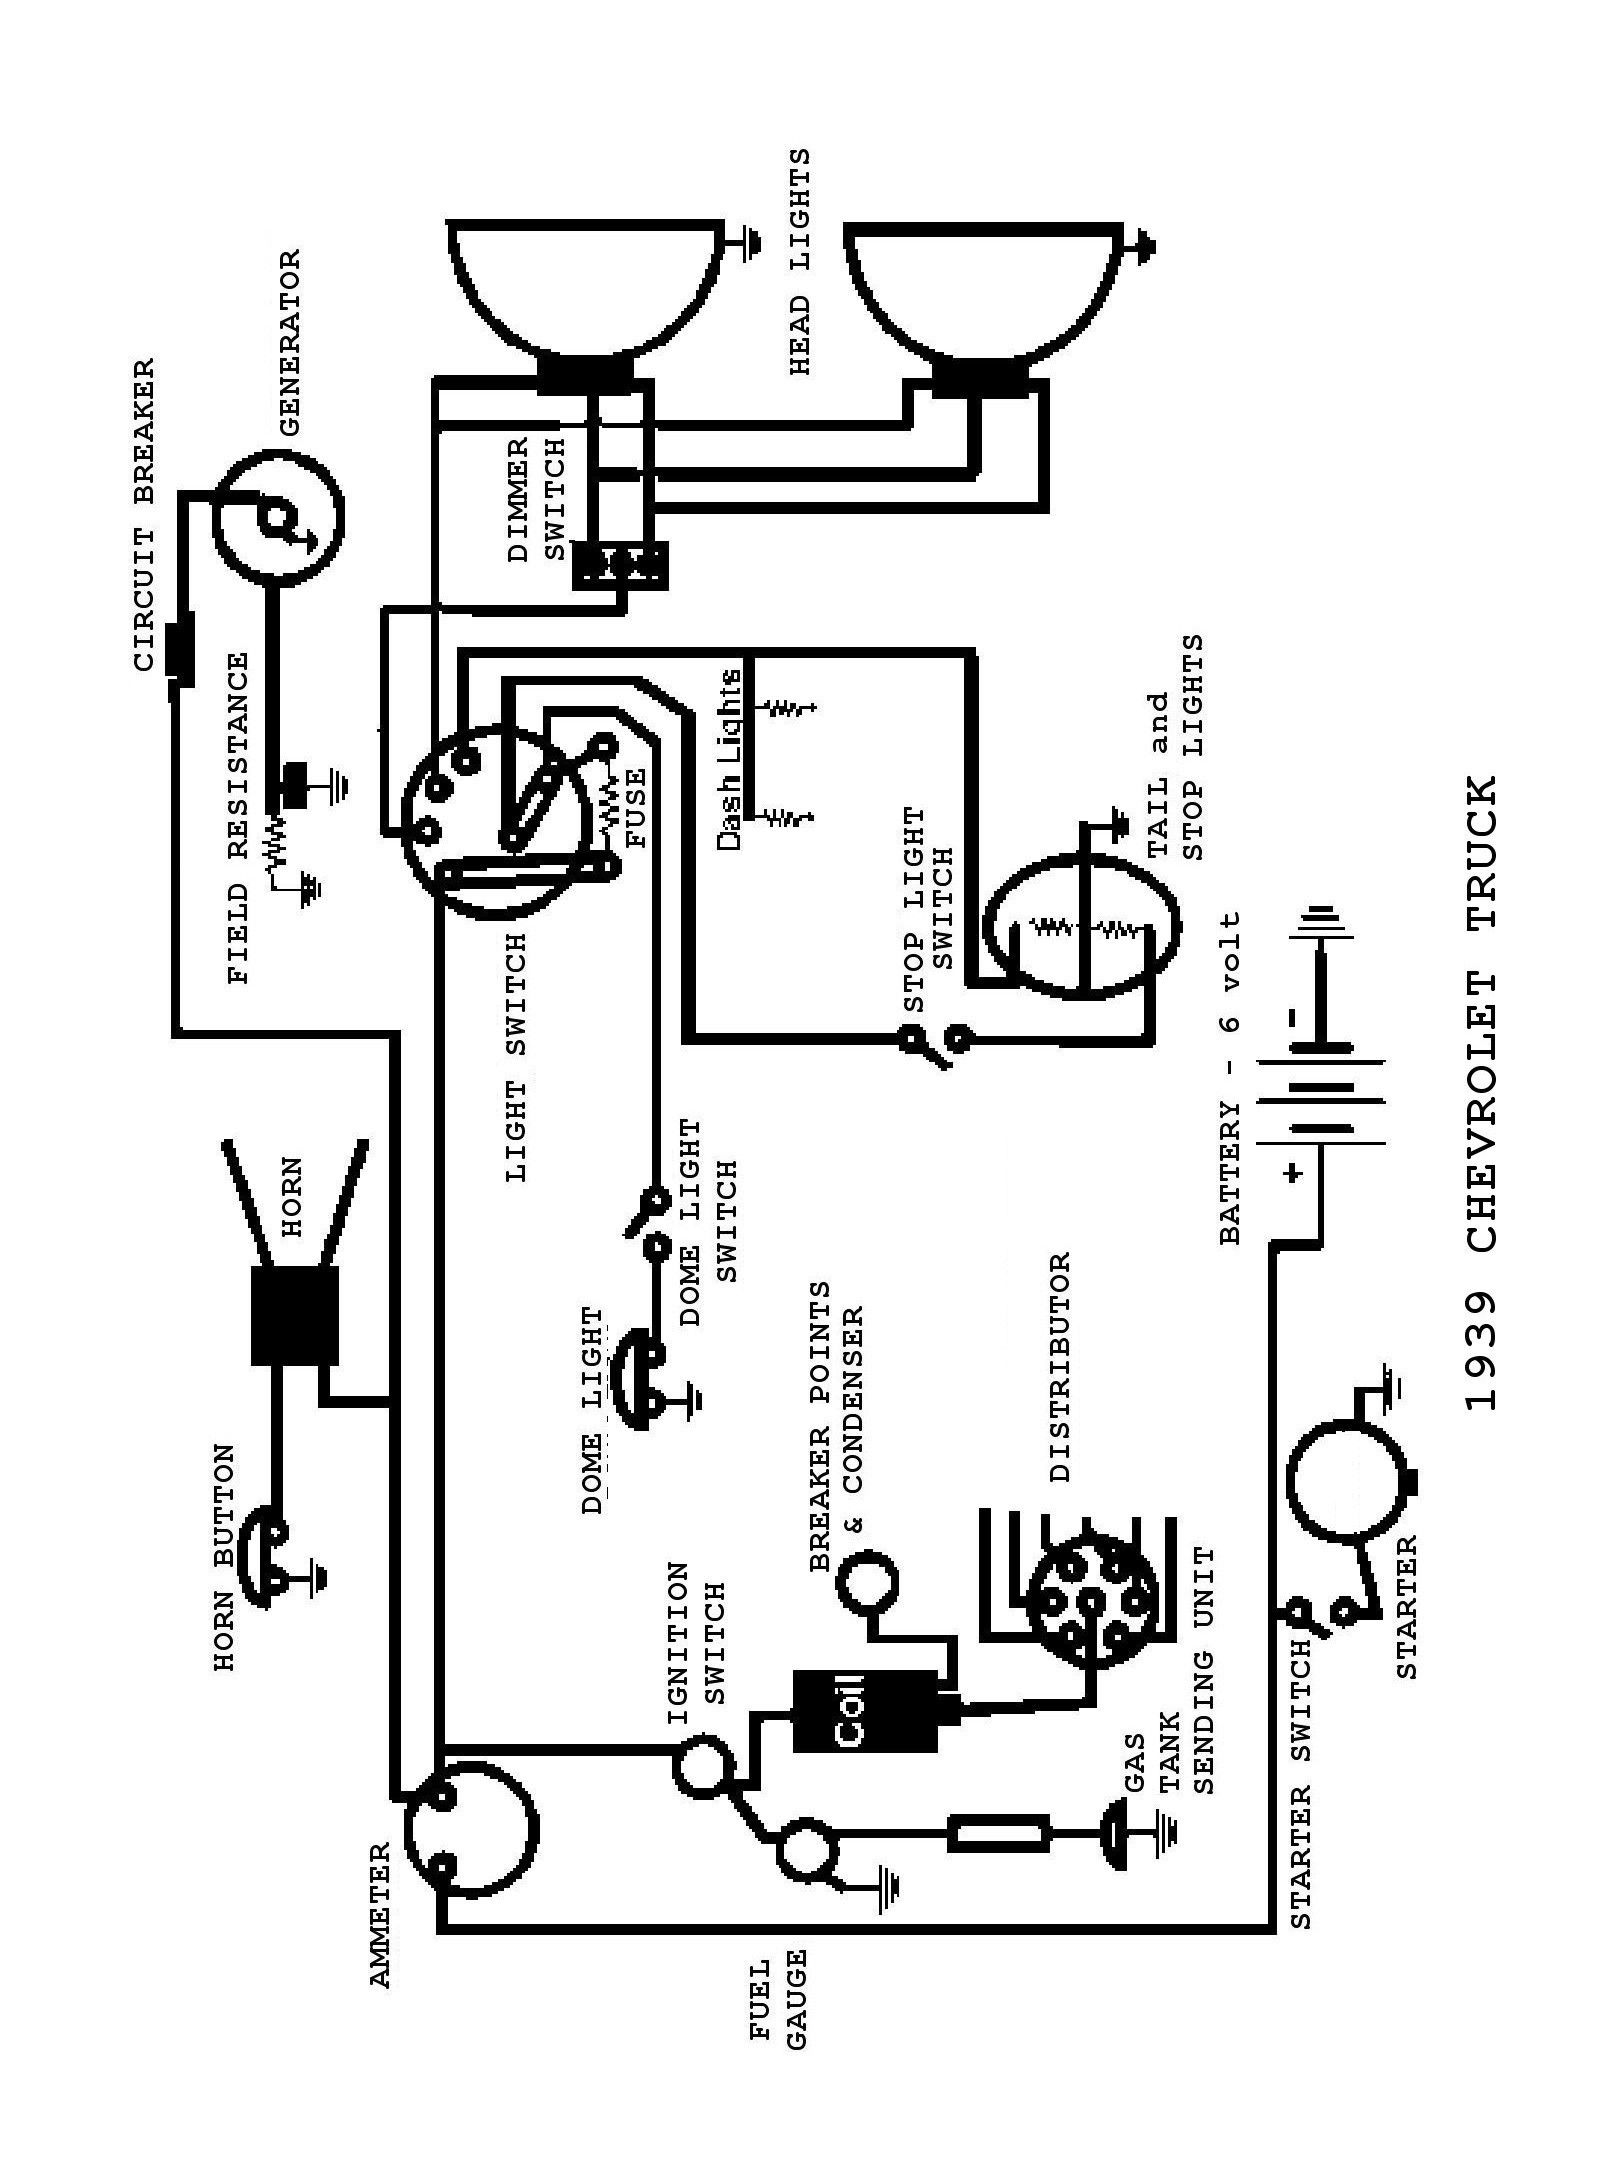 Wiring Diagram For A International Truck Wiring